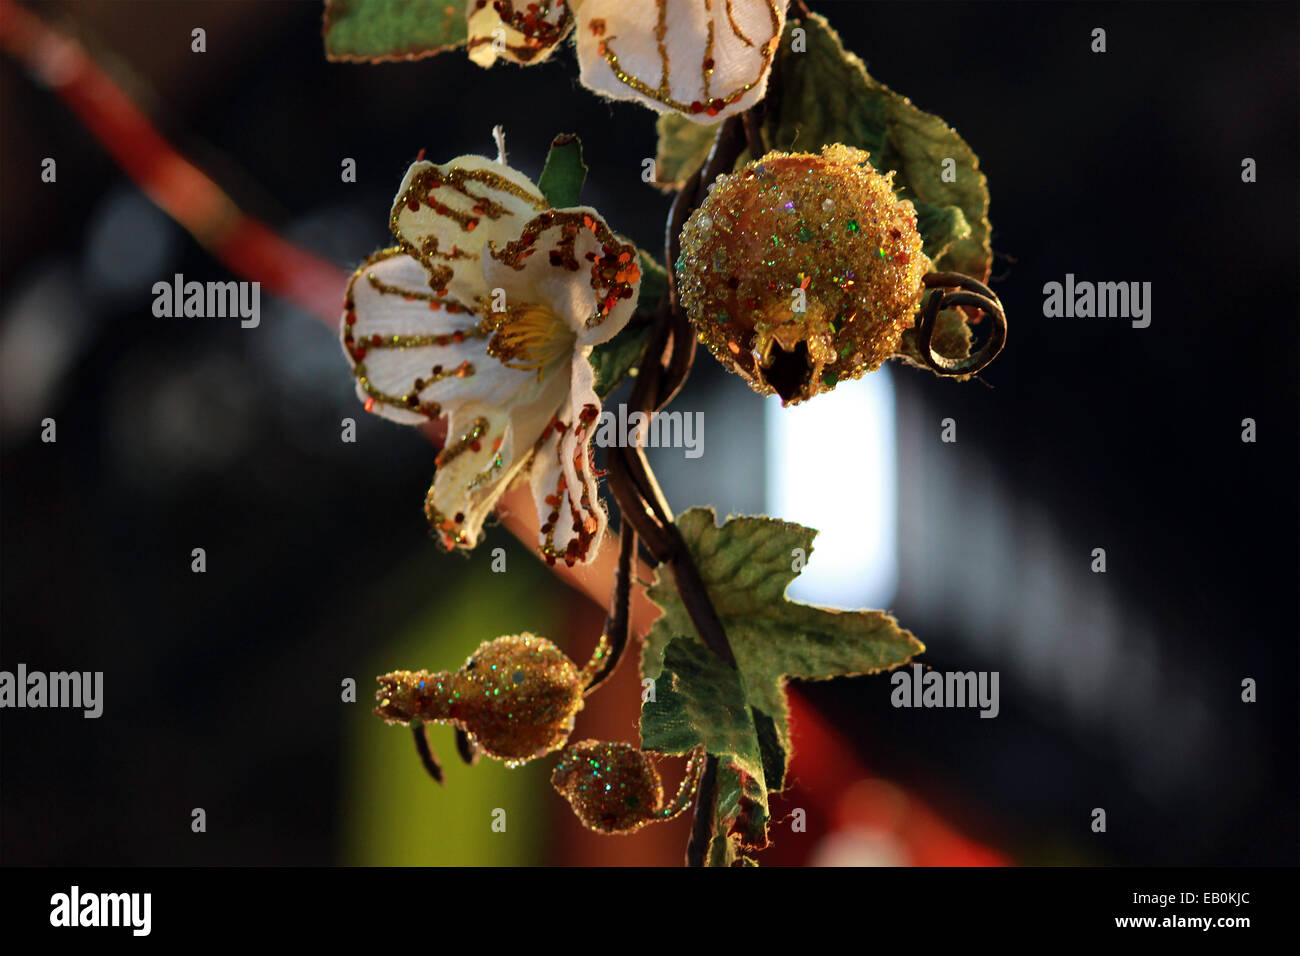 flower, artificial, leaf, color full, sparkle, hanging, in new Delhi, India. - Stock Image